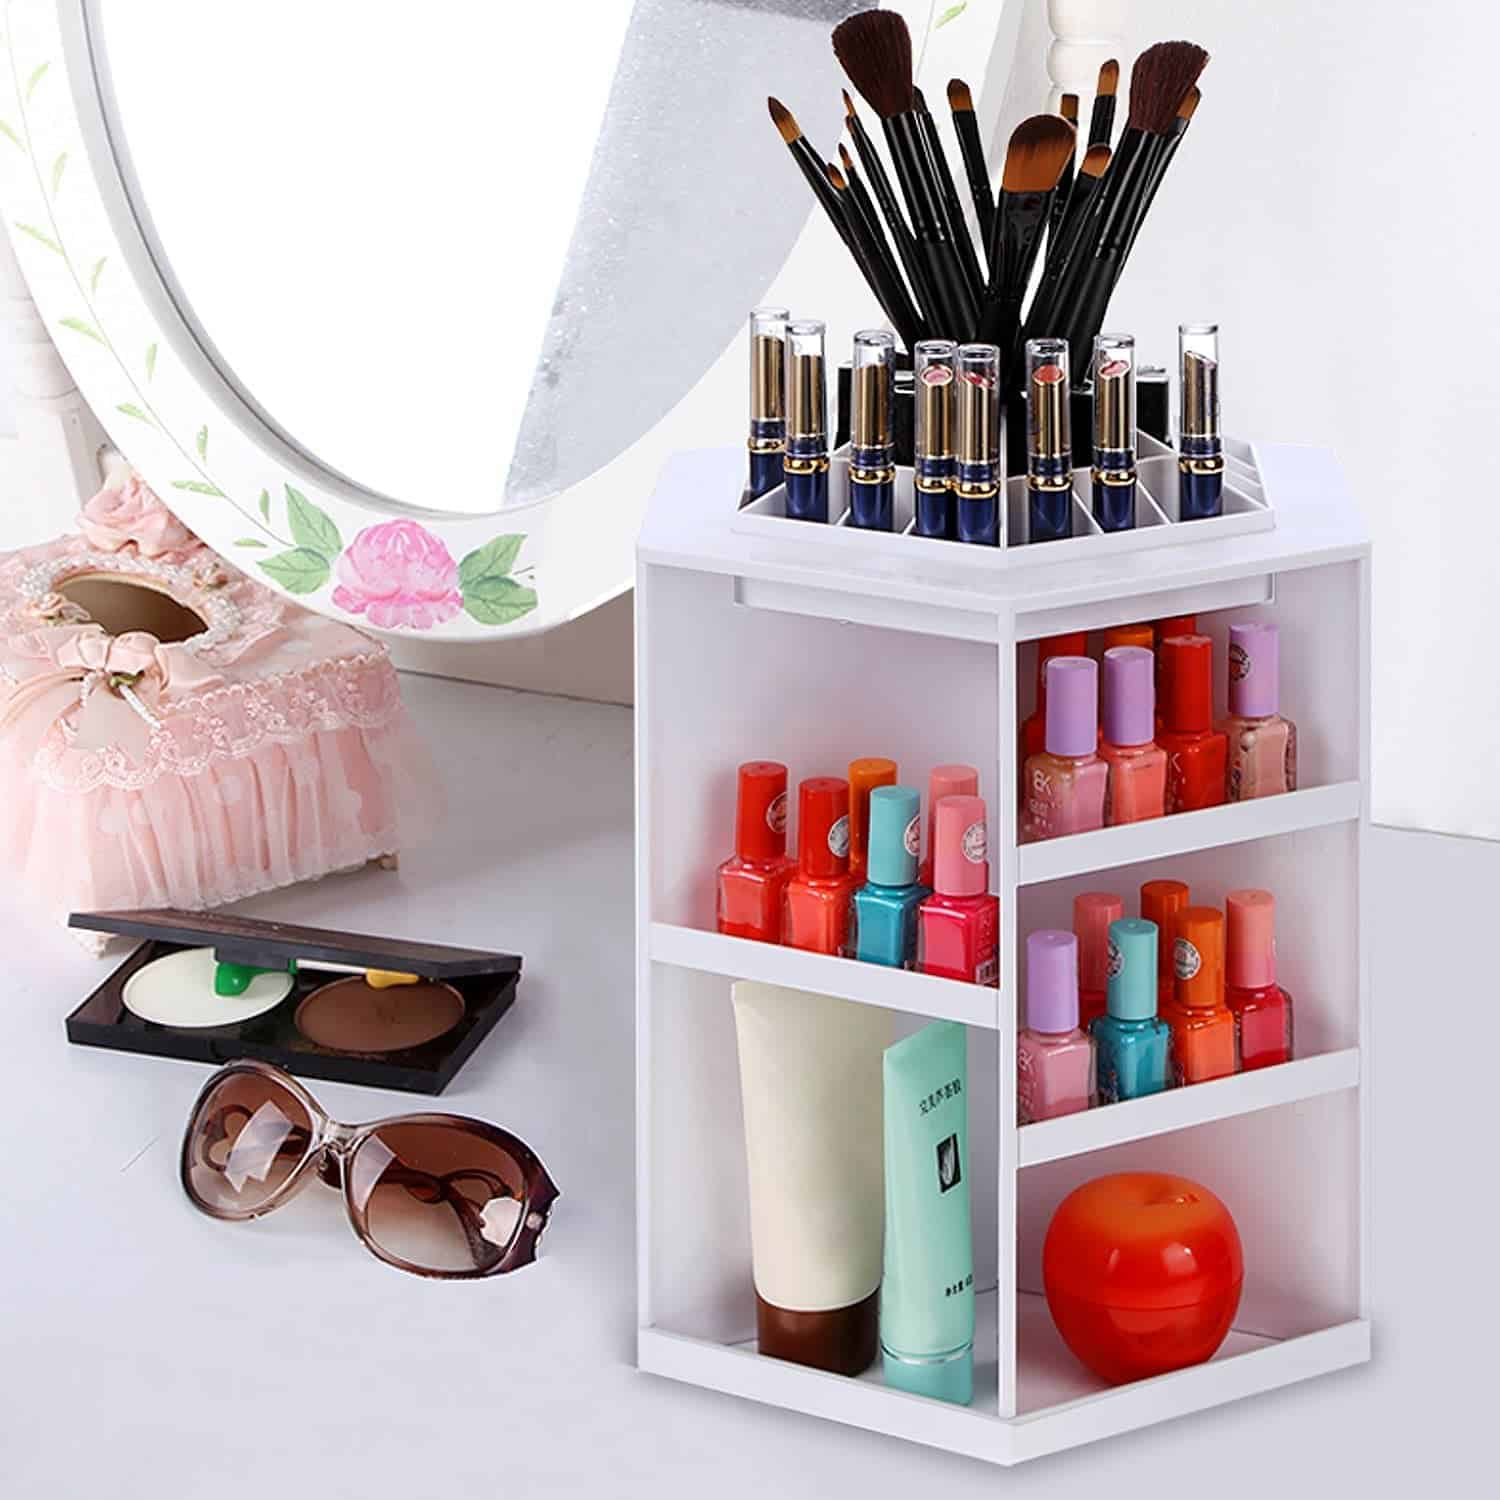 White rotating makeup organizer with assorted nail polishes, liptsticks, and brushes on vanity